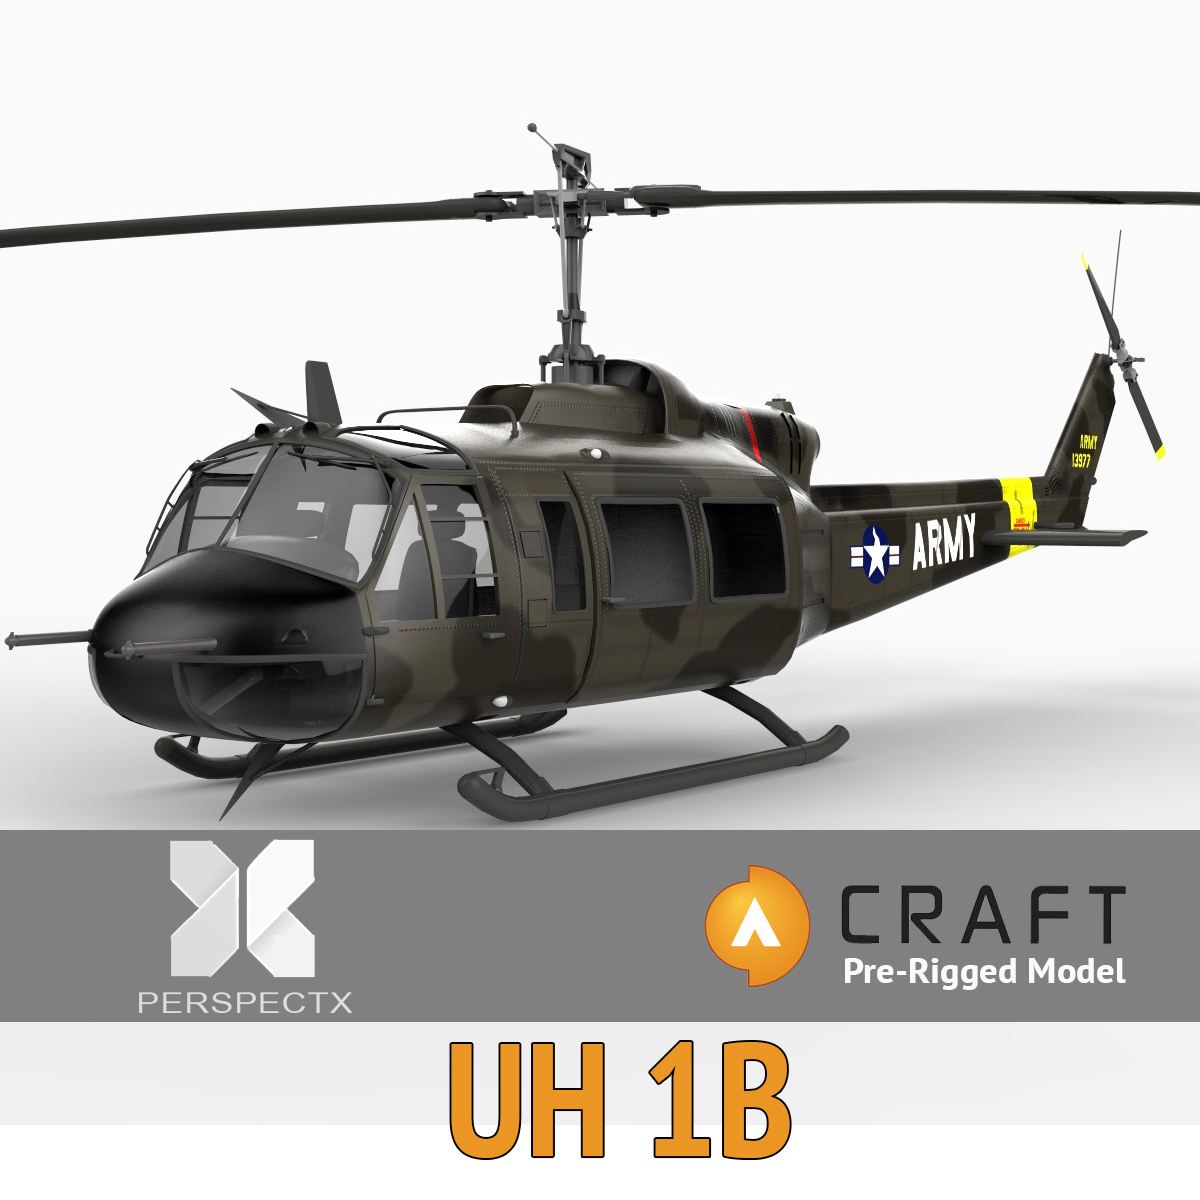 Uh1 Pre Rigged For Craft Director Tools